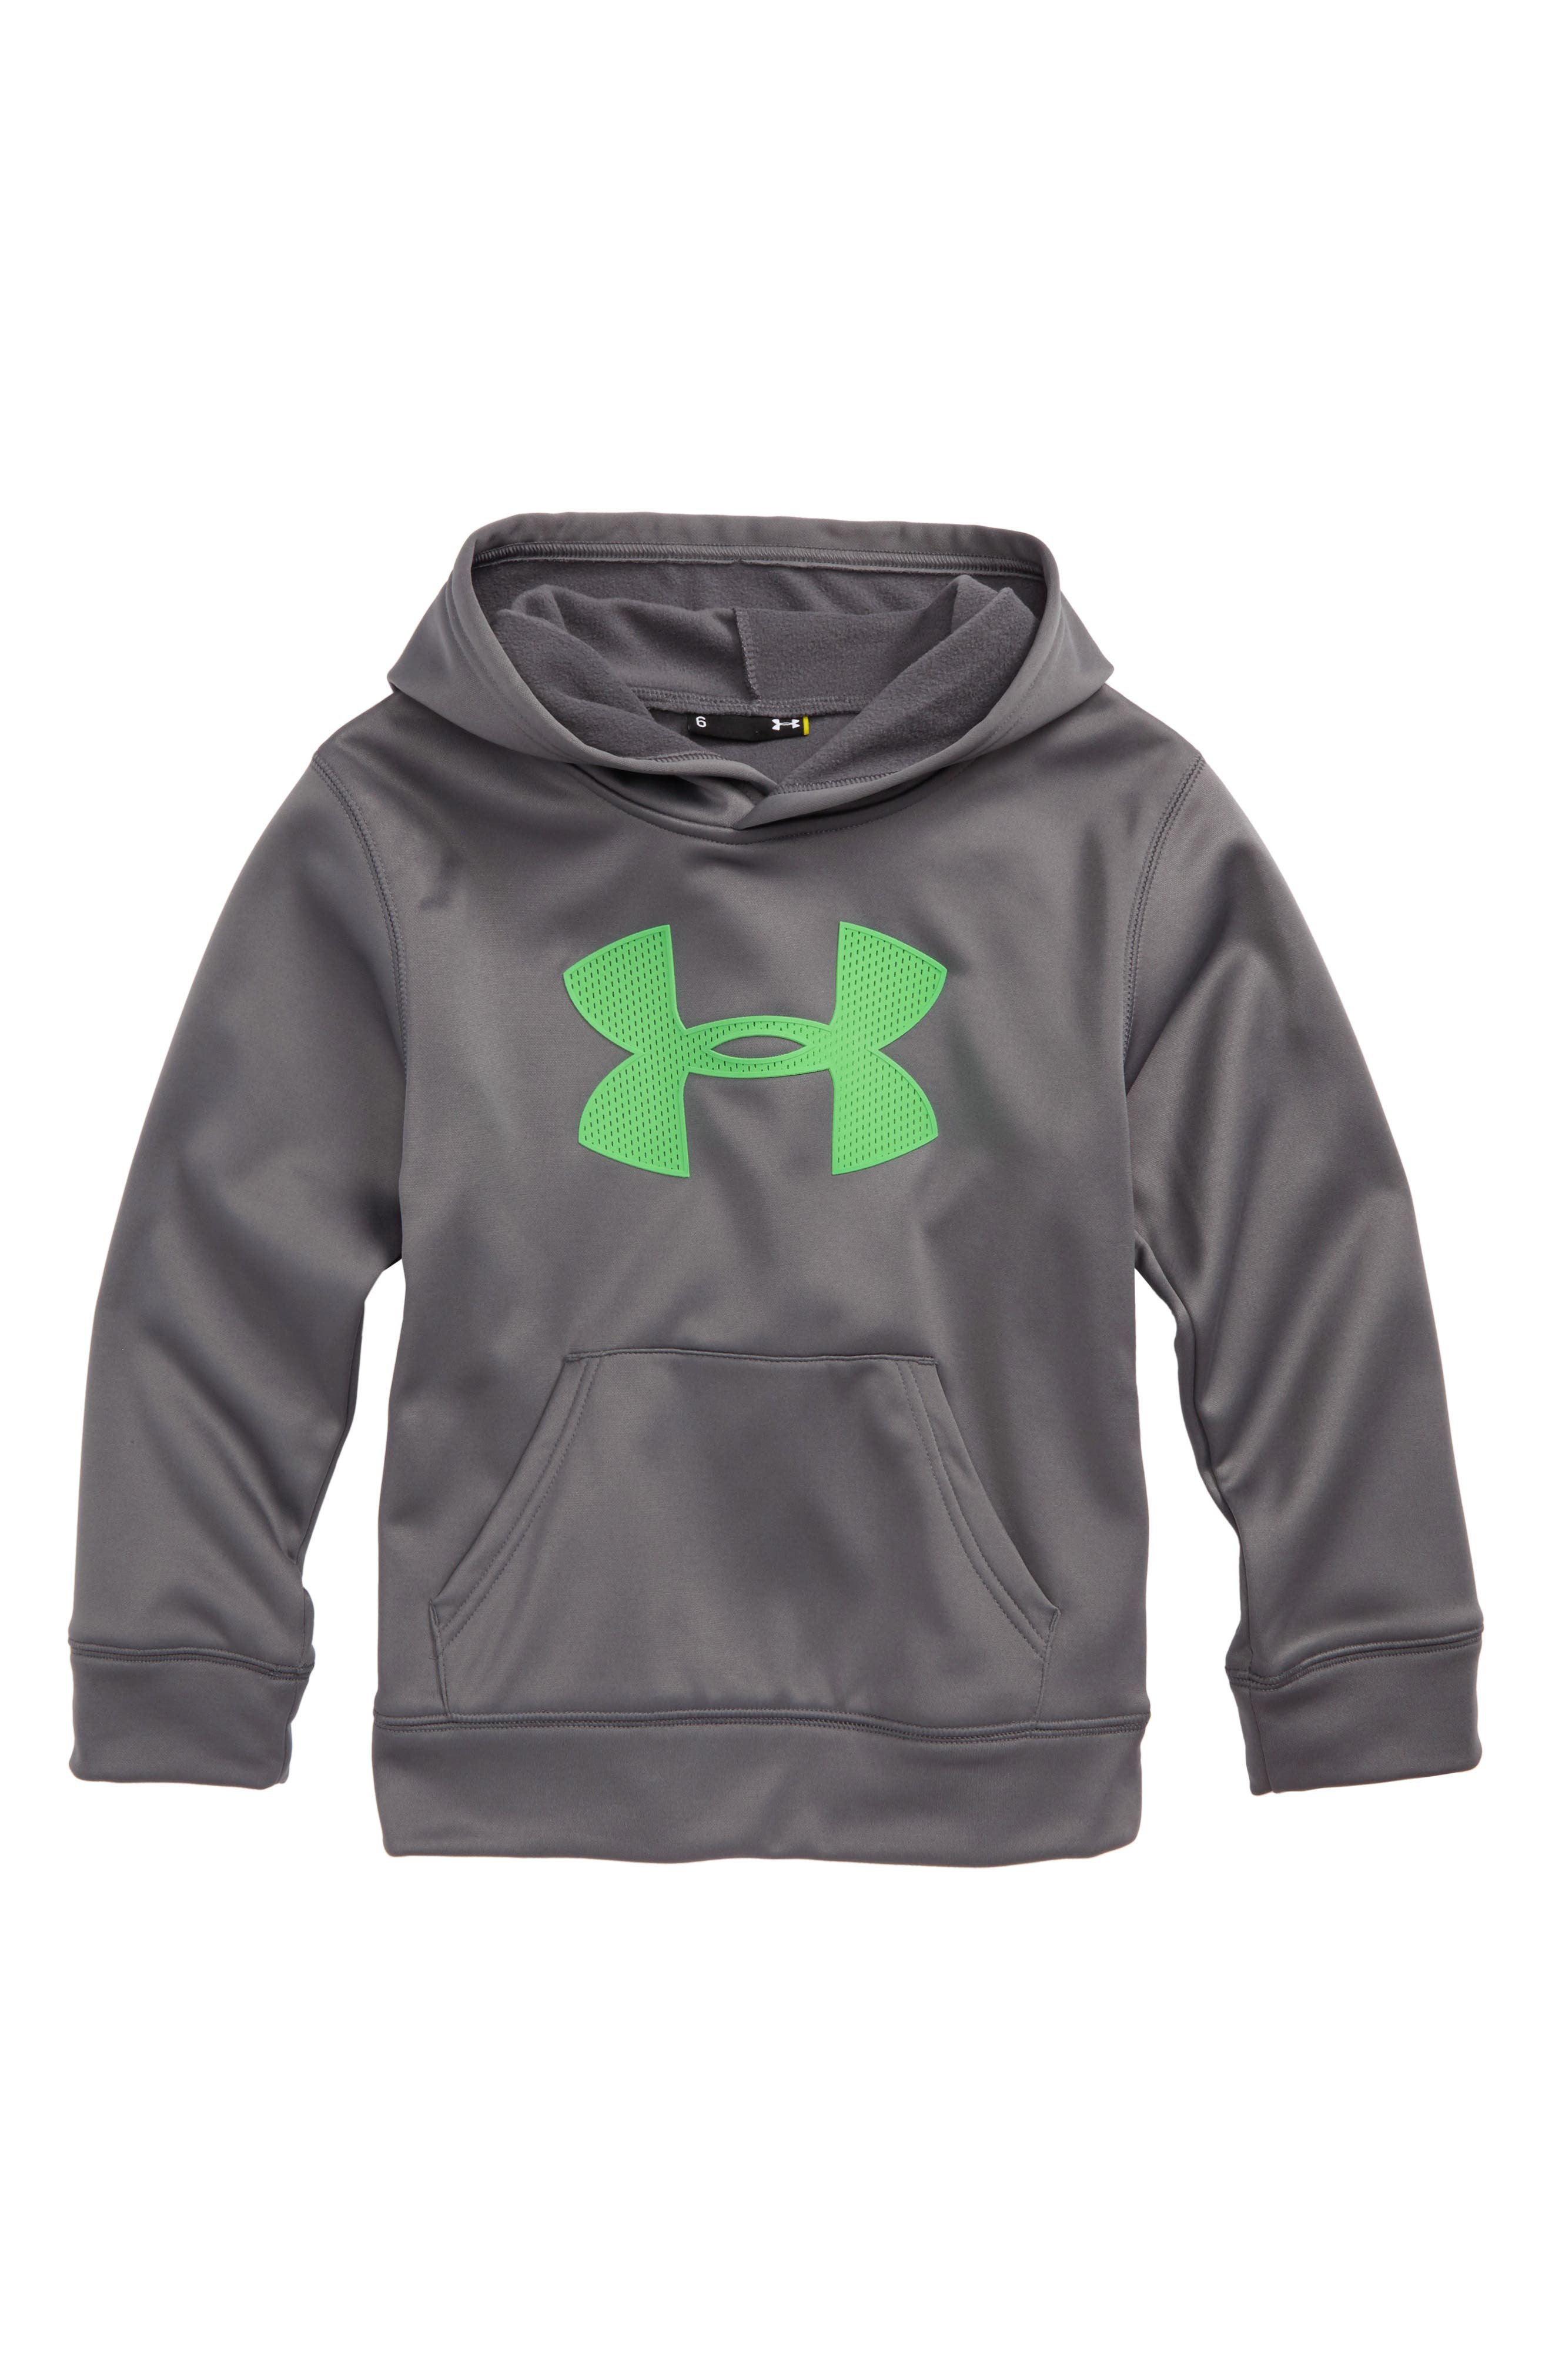 Alternate Image 1 Selected - Under Armour Mesh Big Logo Pullover Hoodie (Little Boys)